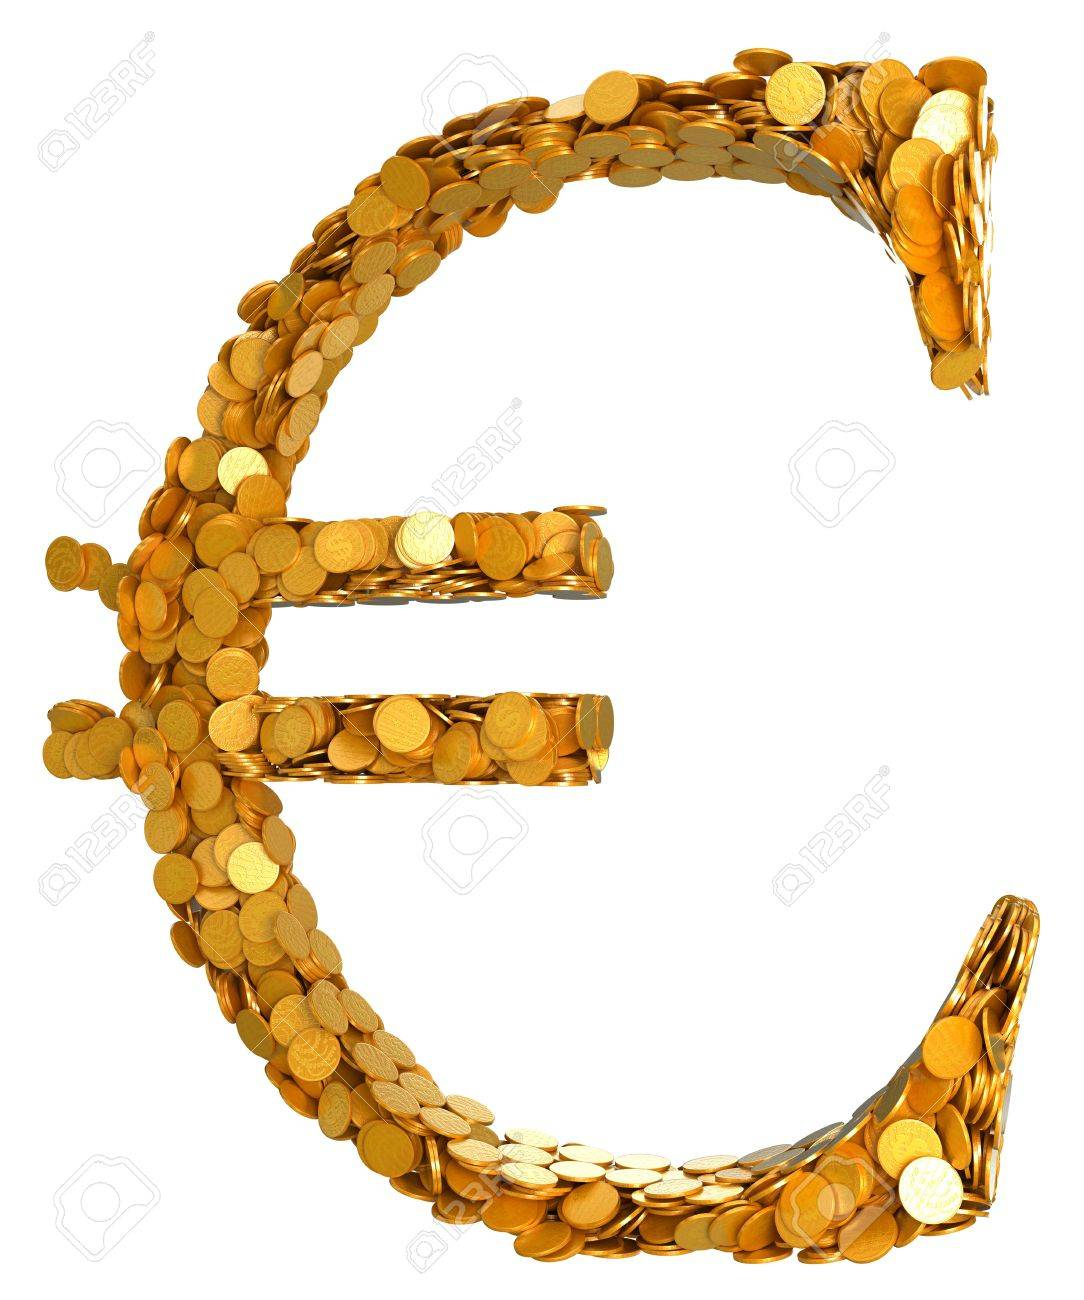 Euro currency and cash symbol assembled with coins isolated euro currency and cash symbol assembled with coins isolated on white other symbols buycottarizona